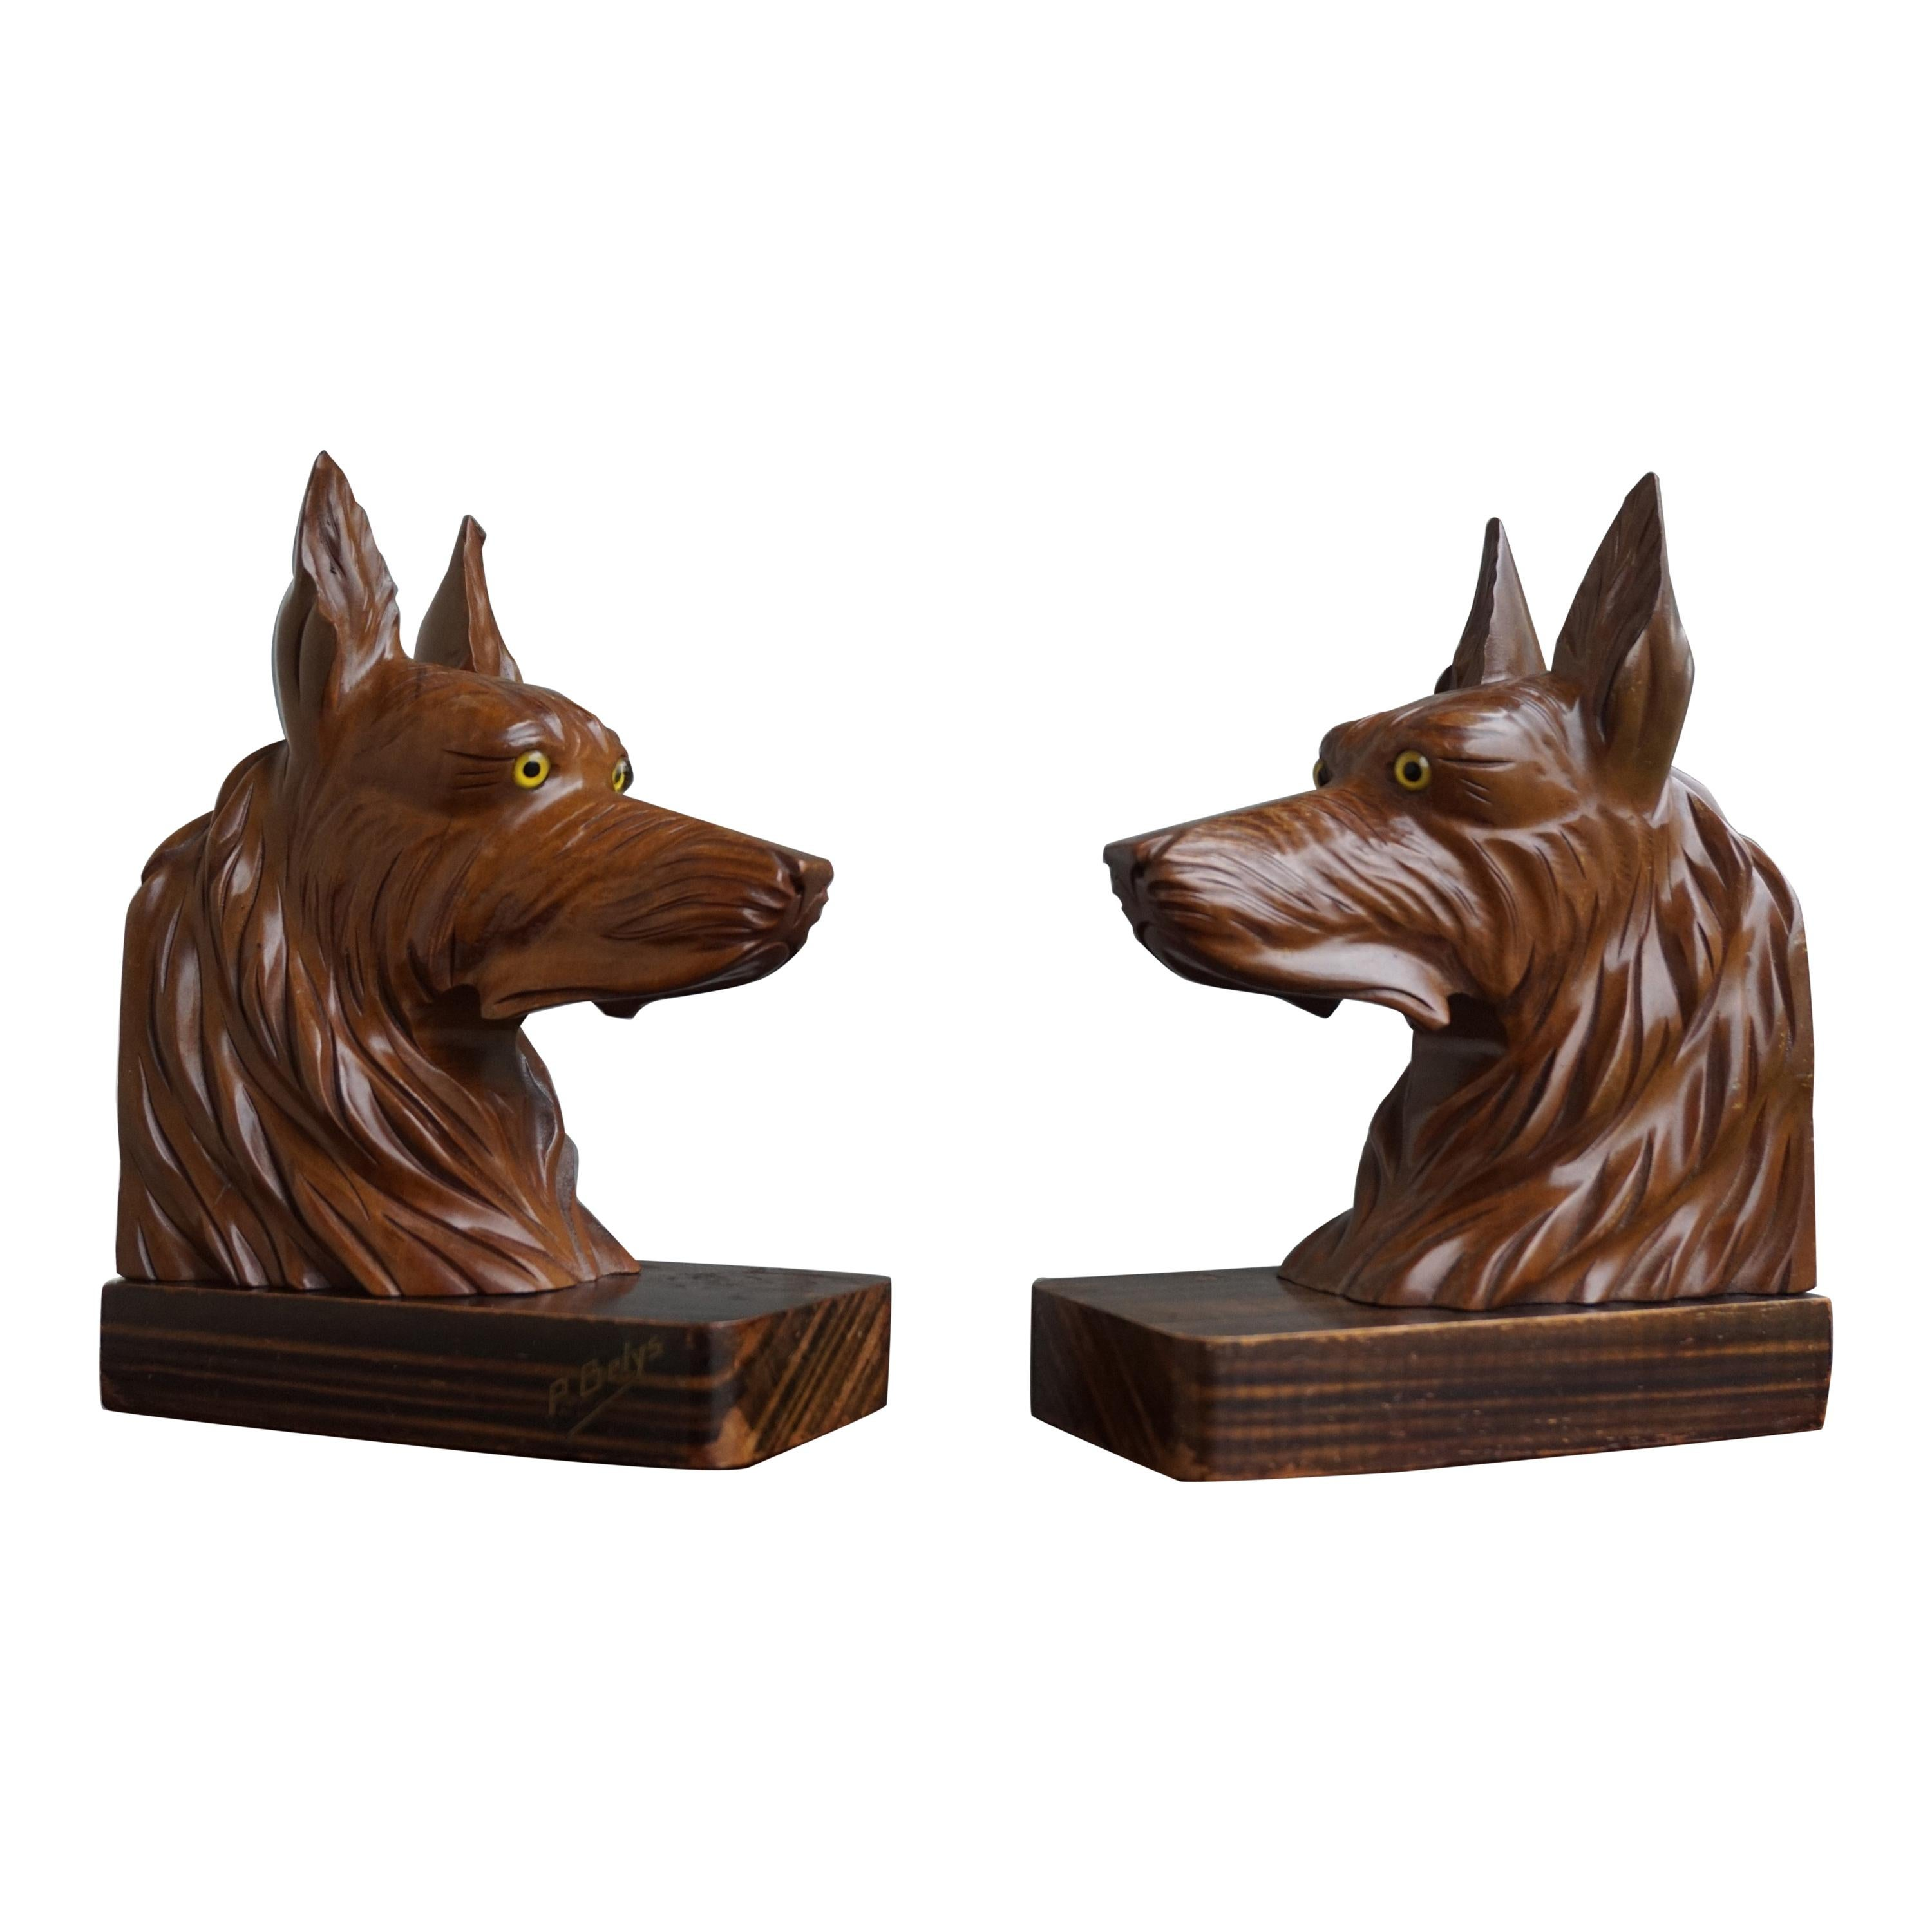 Stunning Pair of Hand Carved French Sheepdog Sculptures or Cherrywood Bookends